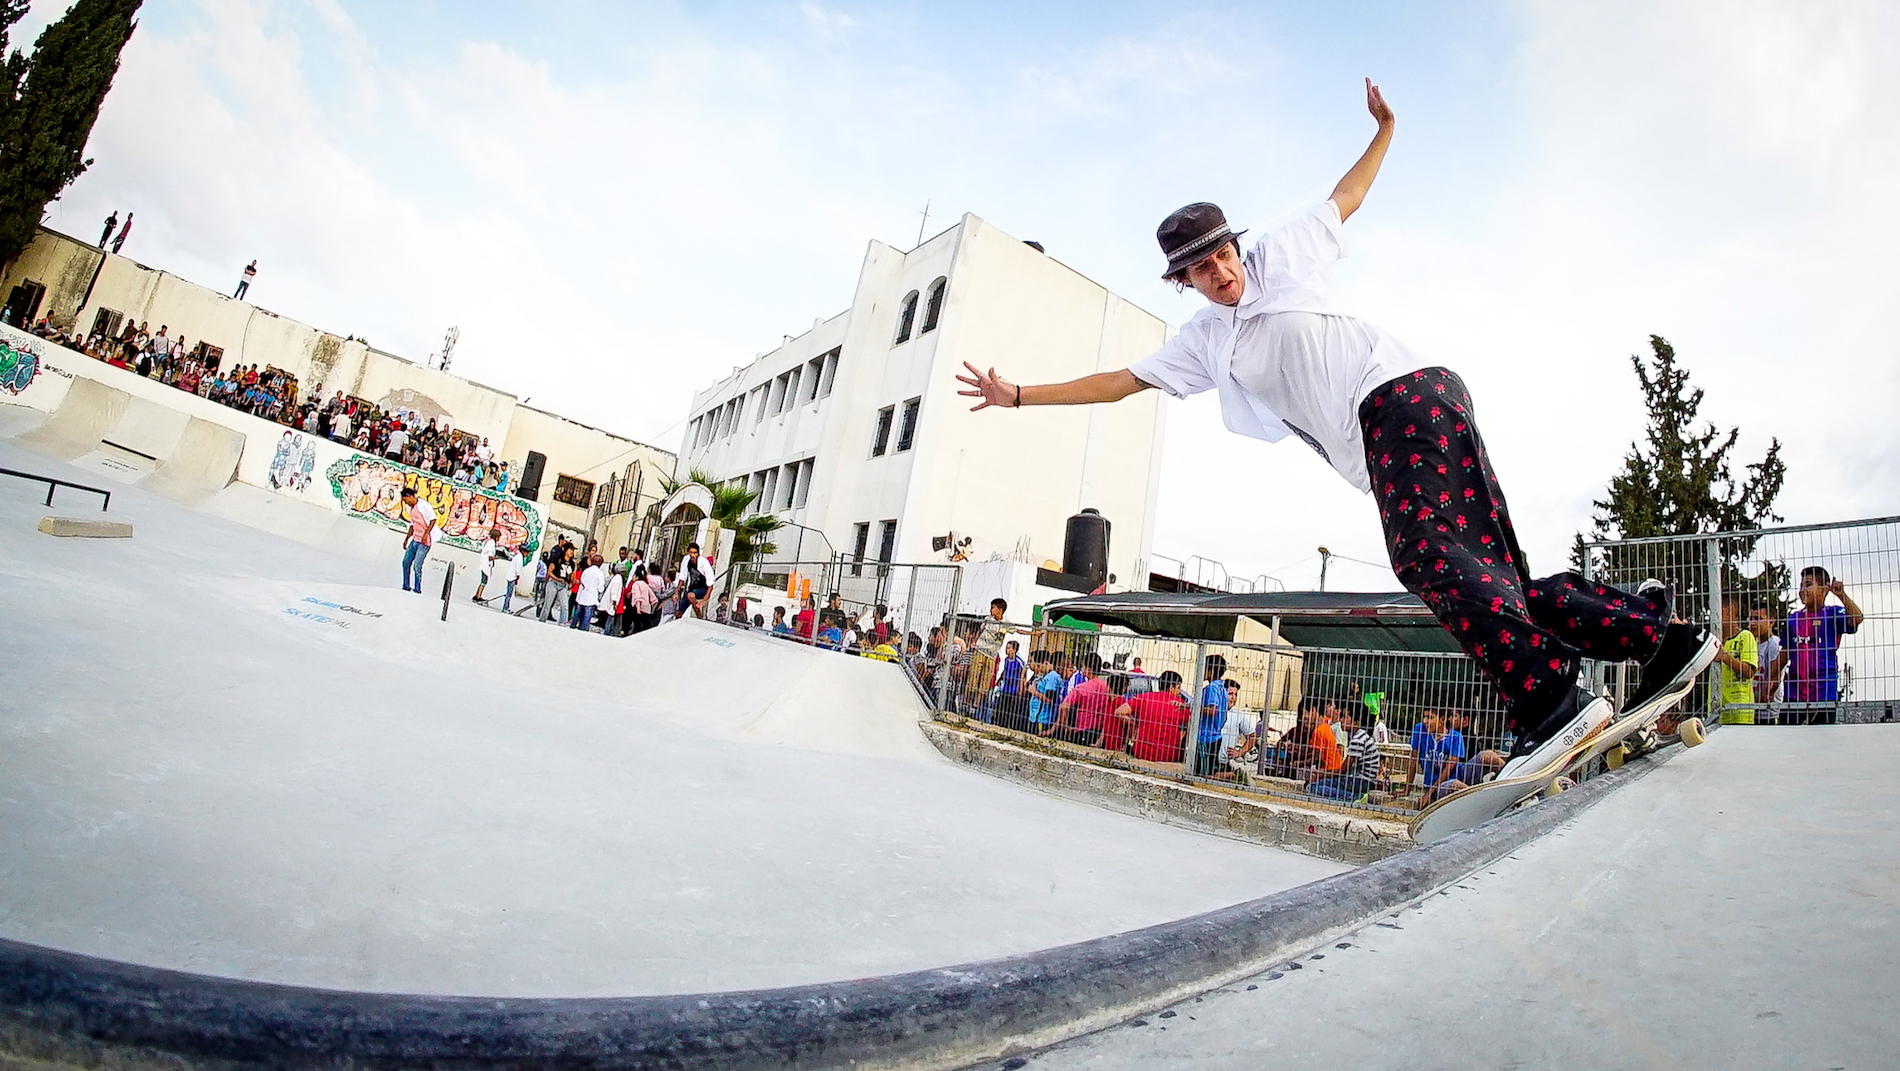 A skate boarder in A Skate Play